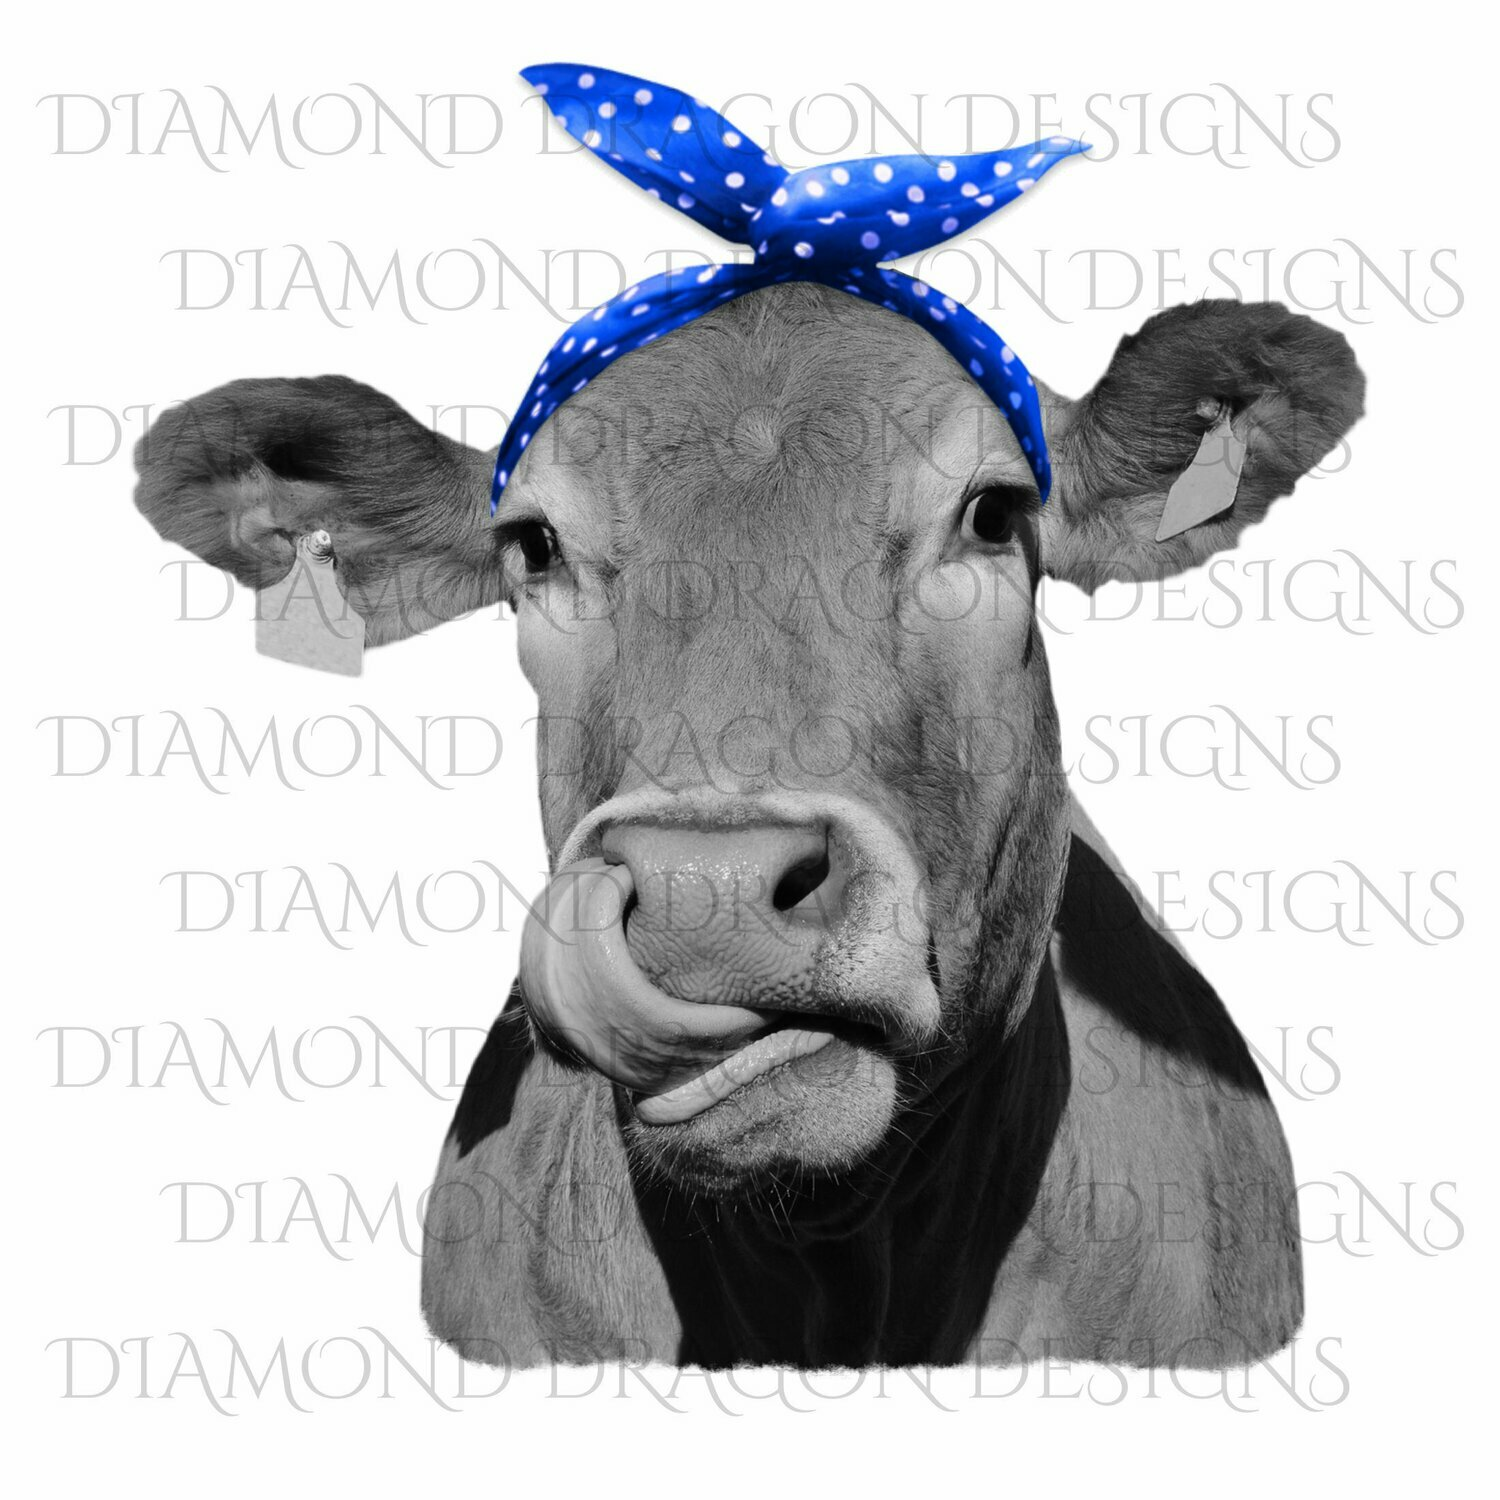 Cows - Heifer, Image, Cute Cow with Blue Polkadot Bandana, Cowlick, Cow Tongue Out, Waterslide